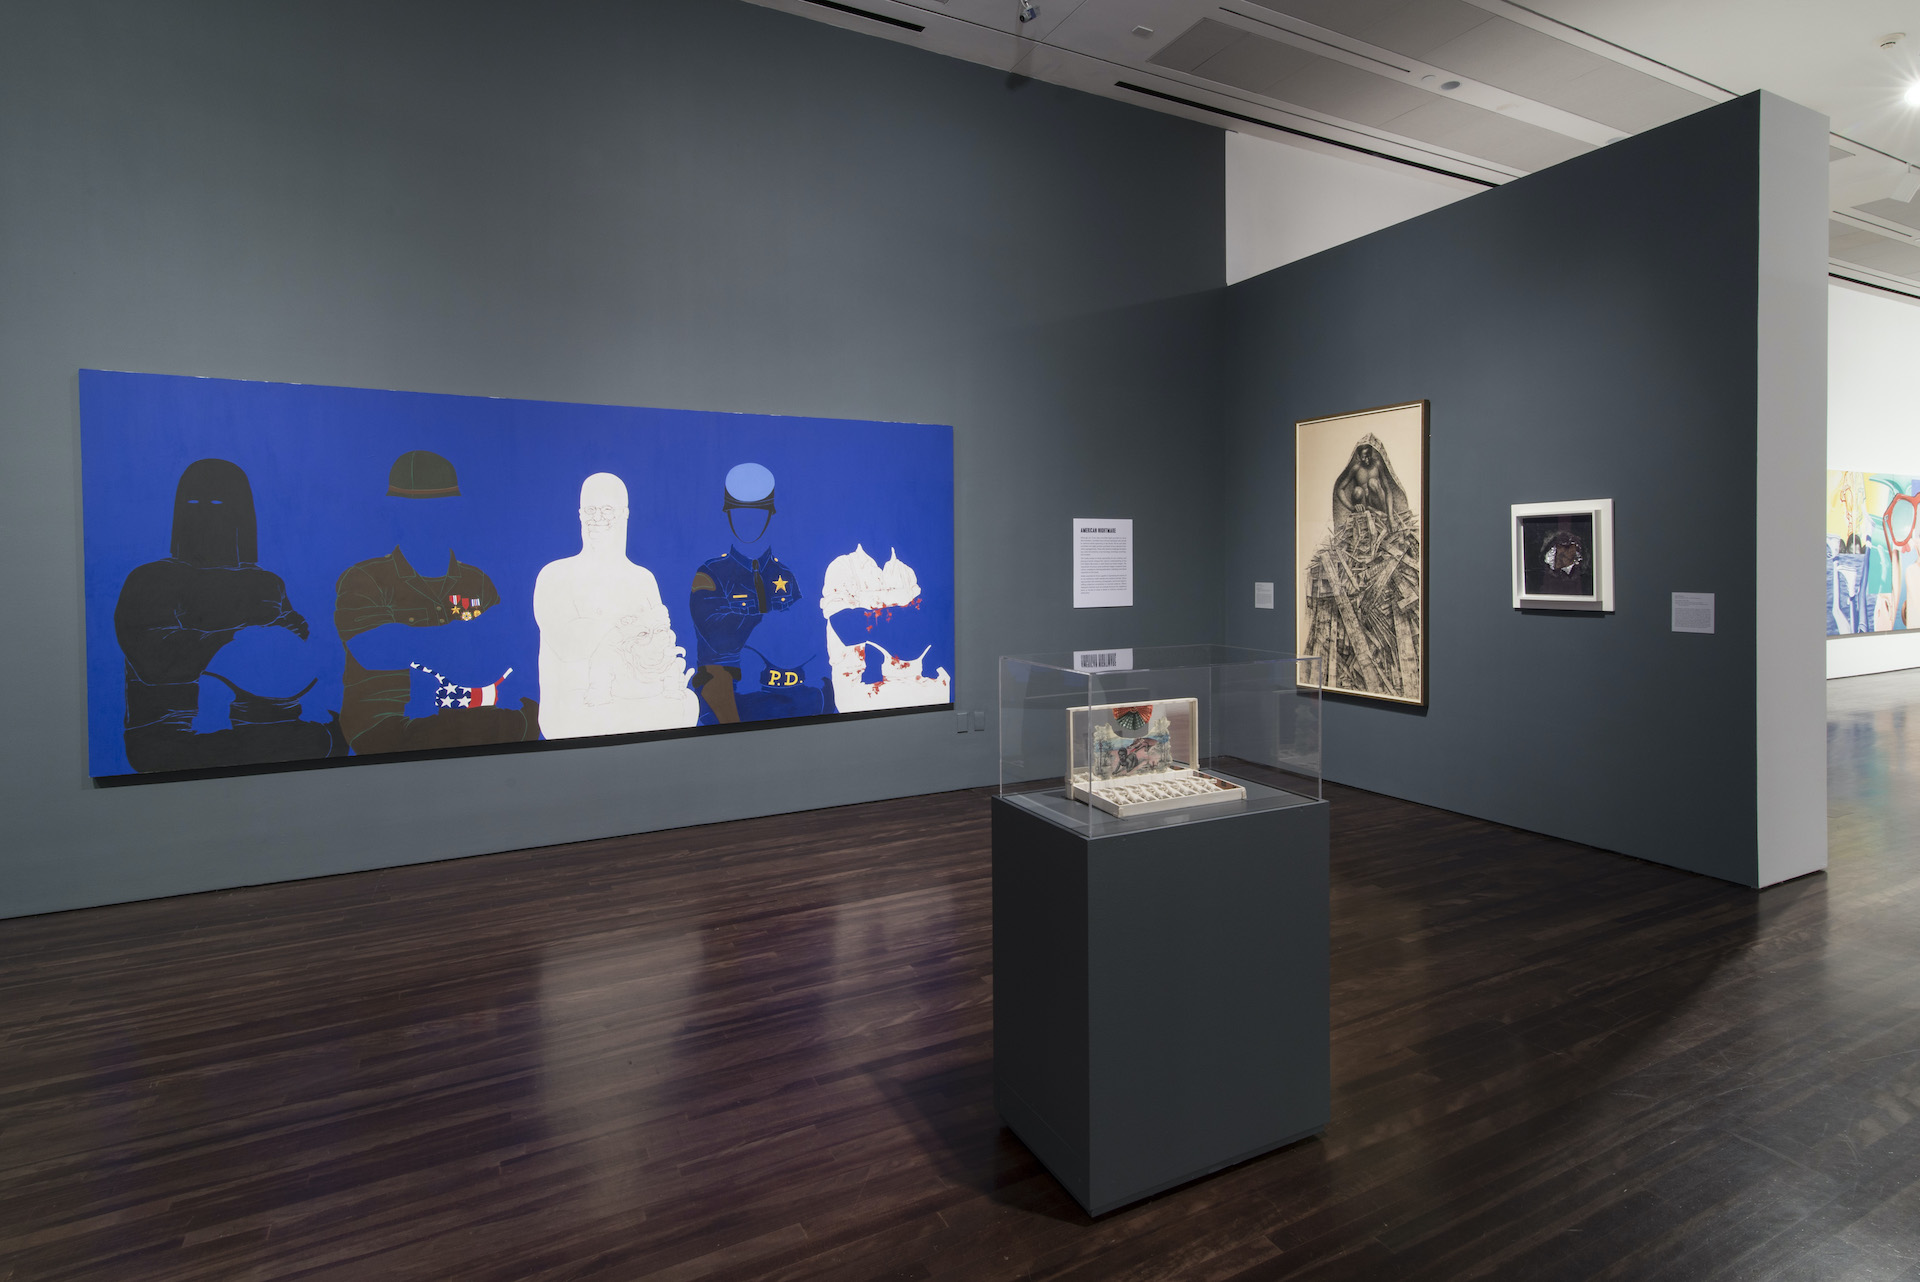 """Installation view of """"Witness: Art and Civil Rights in the Sixties"""" at theBlanton, several artworks are hung on the walls"""